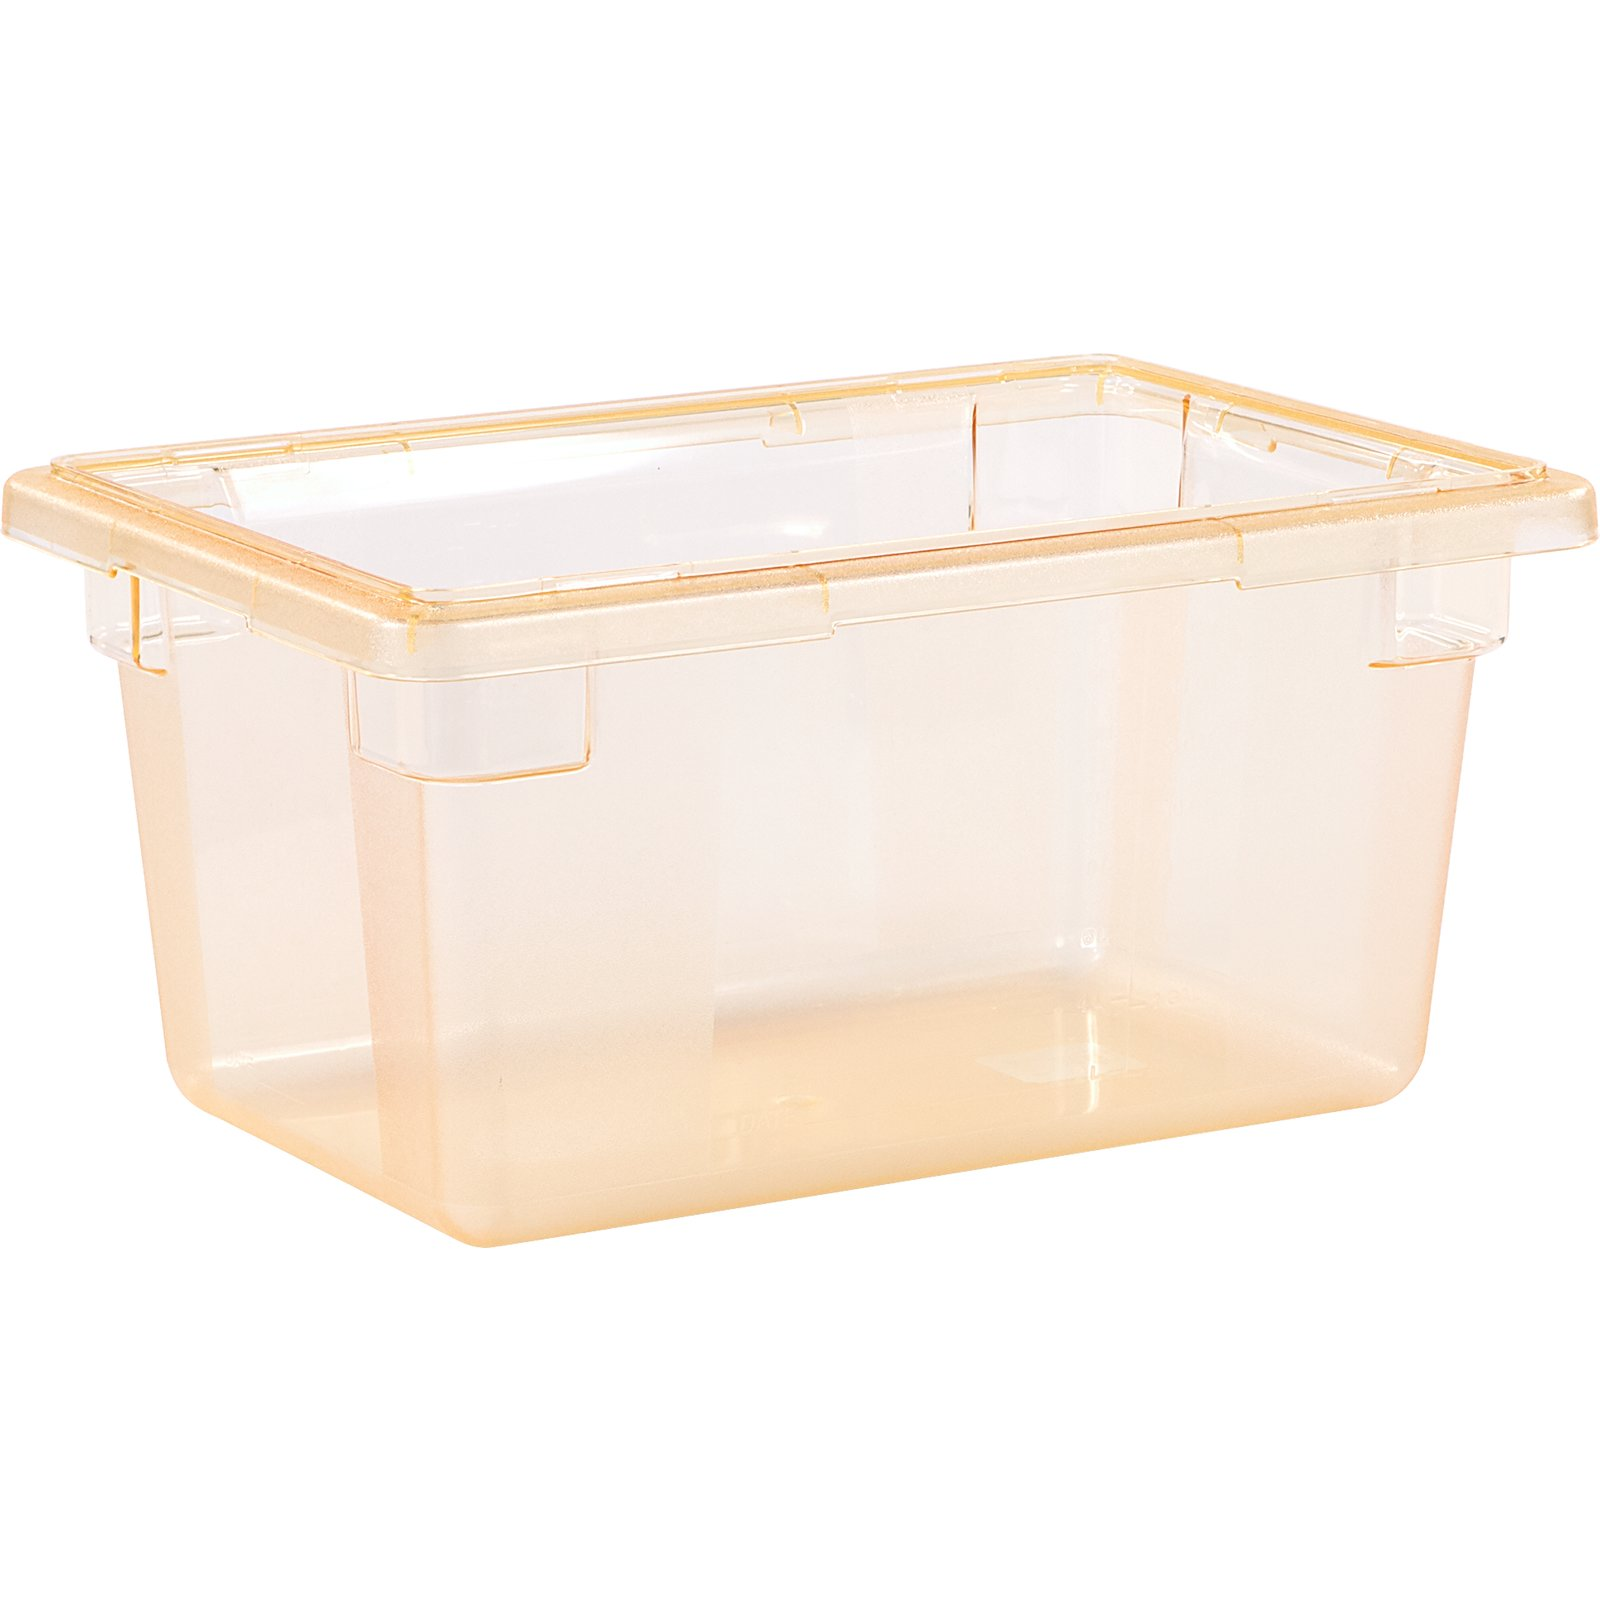 10612C22 StorPlus Color Coded Food Box Storage Container 5 Gallon